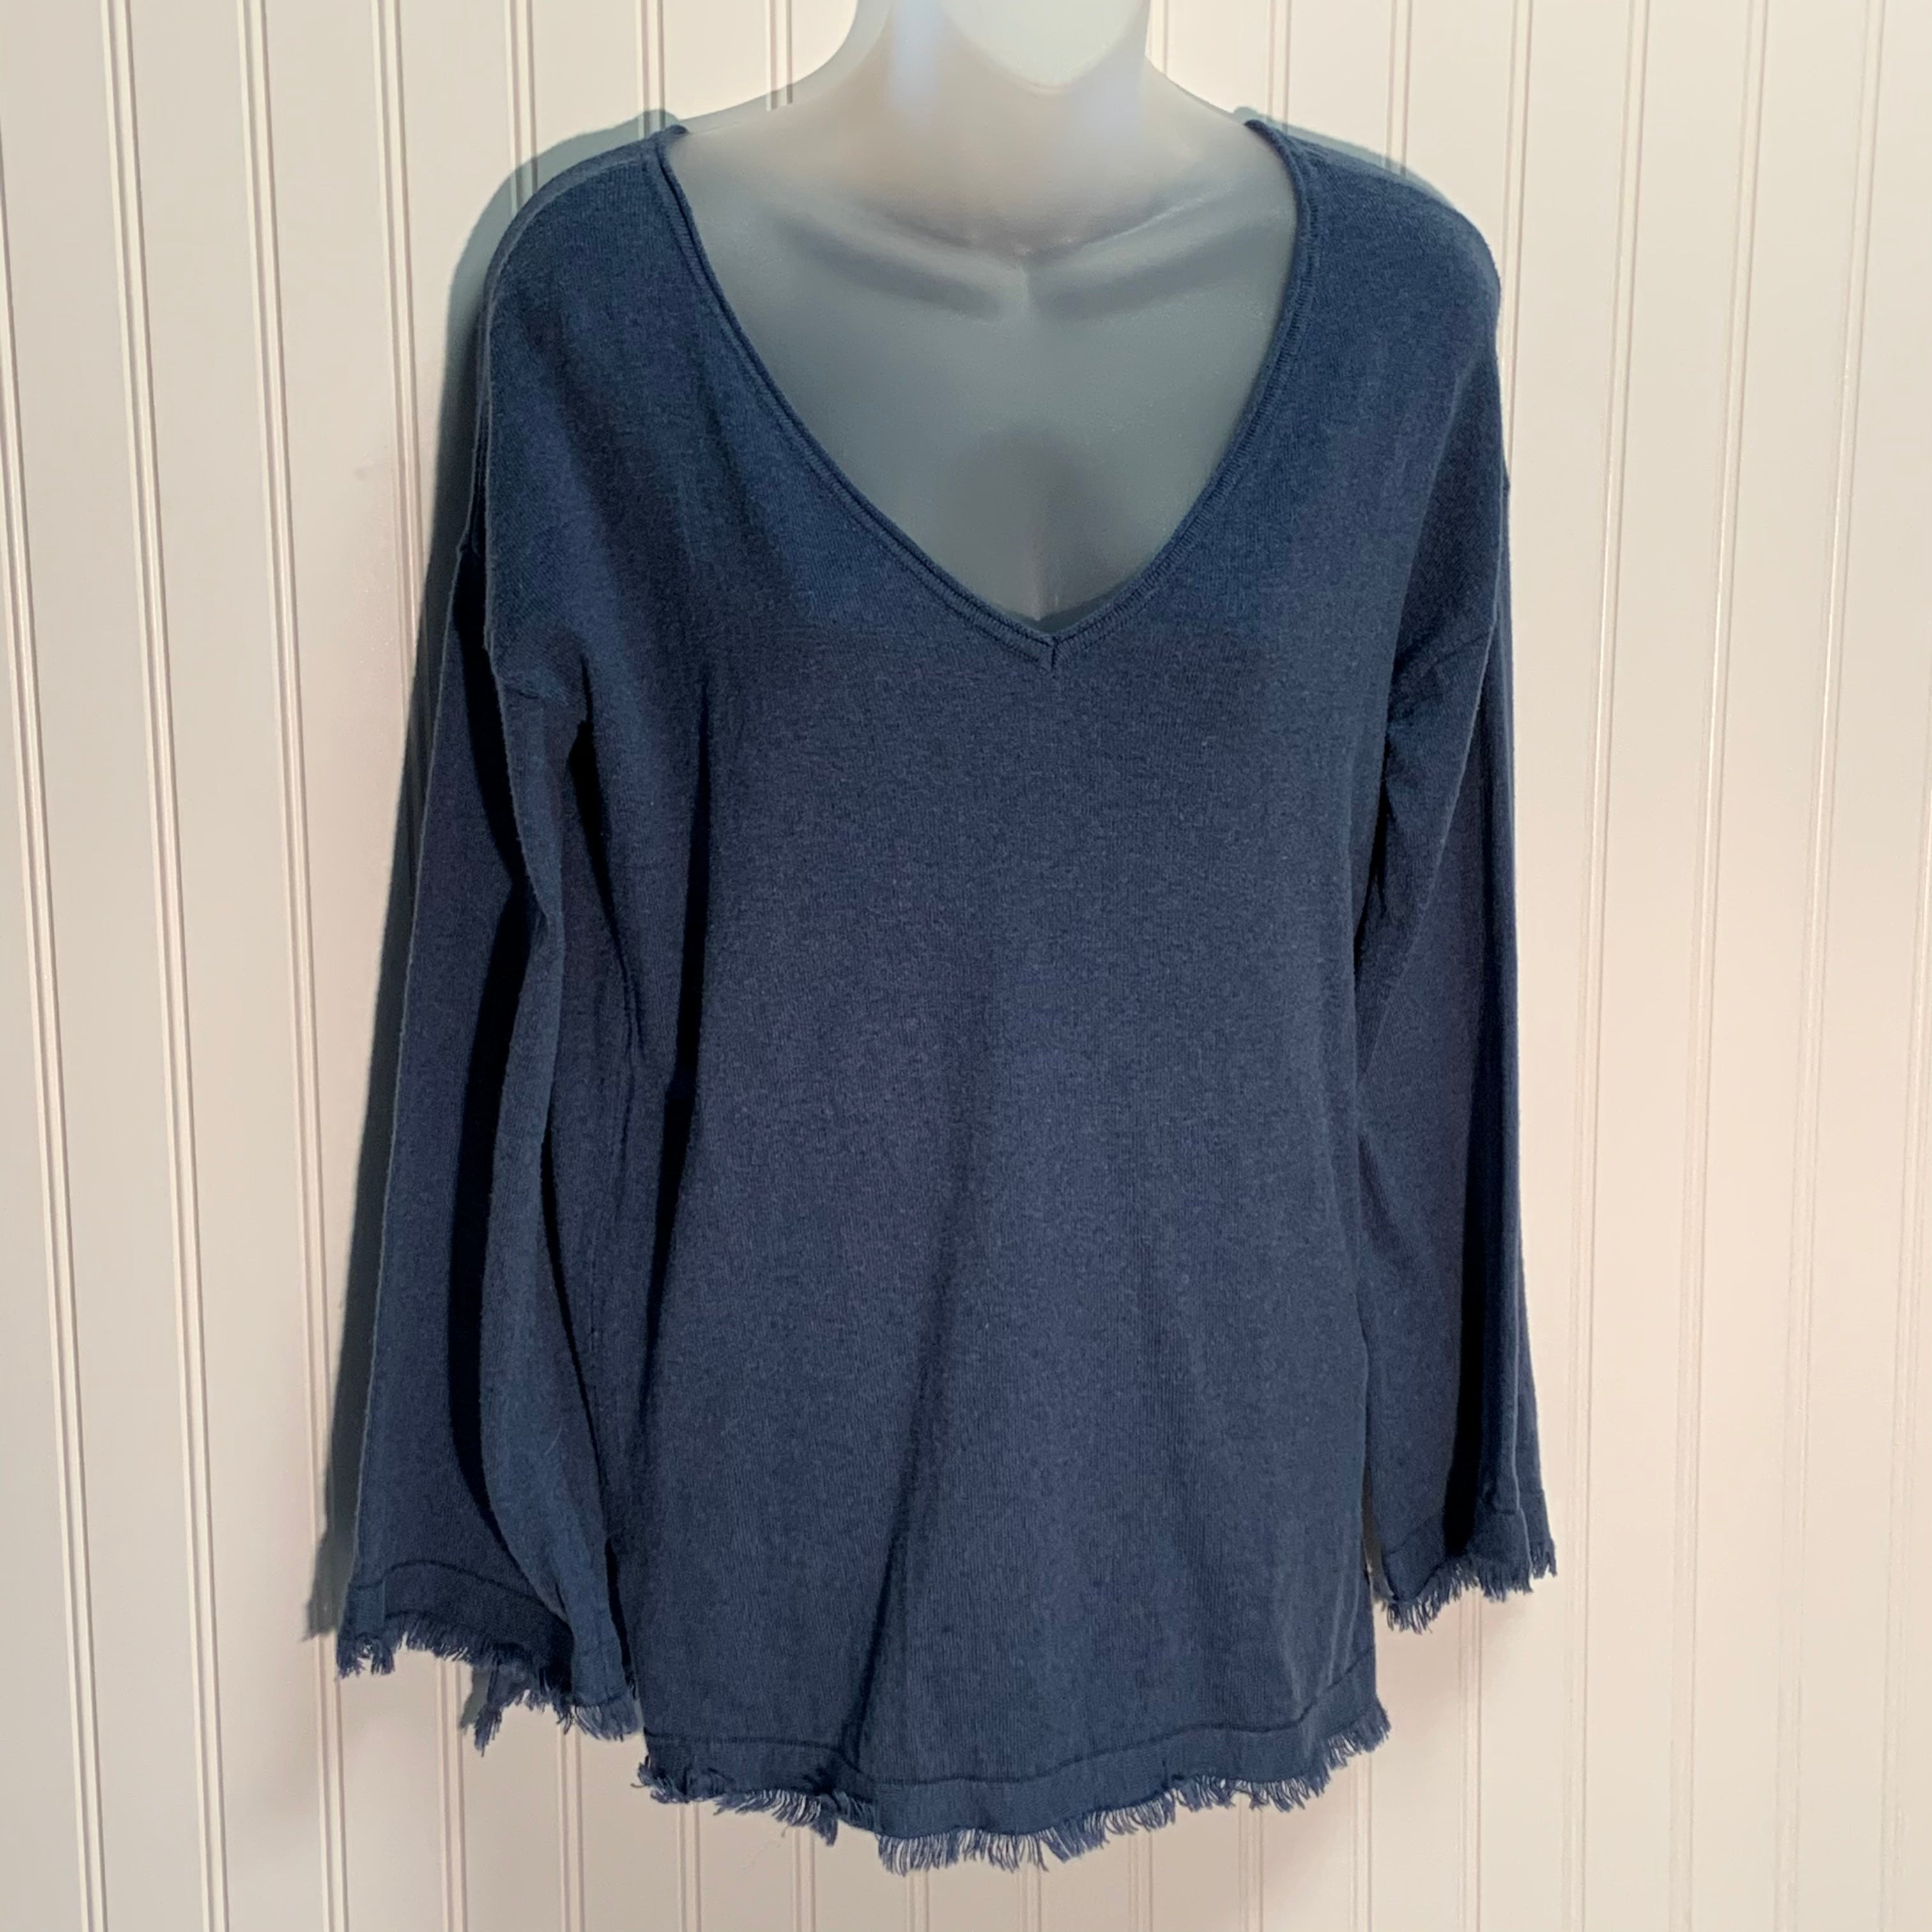 Primary Photo - BRAND: 525 AMERICA <BR>STYLE: SWEATER LIGHTWEIGHT <BR>COLOR: BLUE <BR>SIZE: S <BR>OTHER INFO: 95% COTTON 5 % CASHMERE <BR>SKU: 239-23911-70398